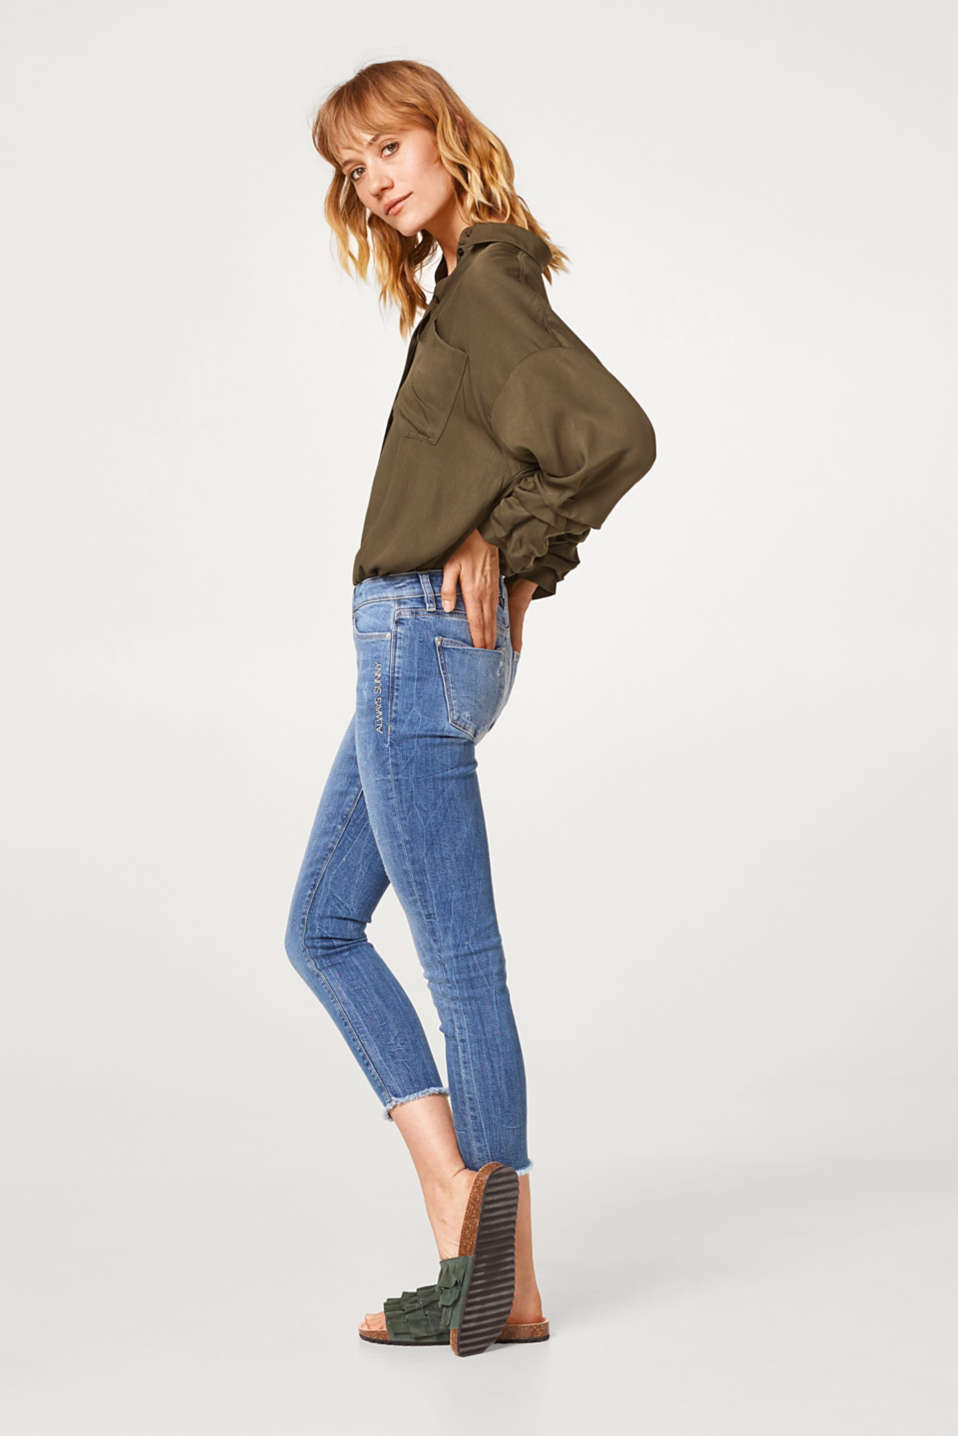 Stretchy Capri-length jeans with an embroidery